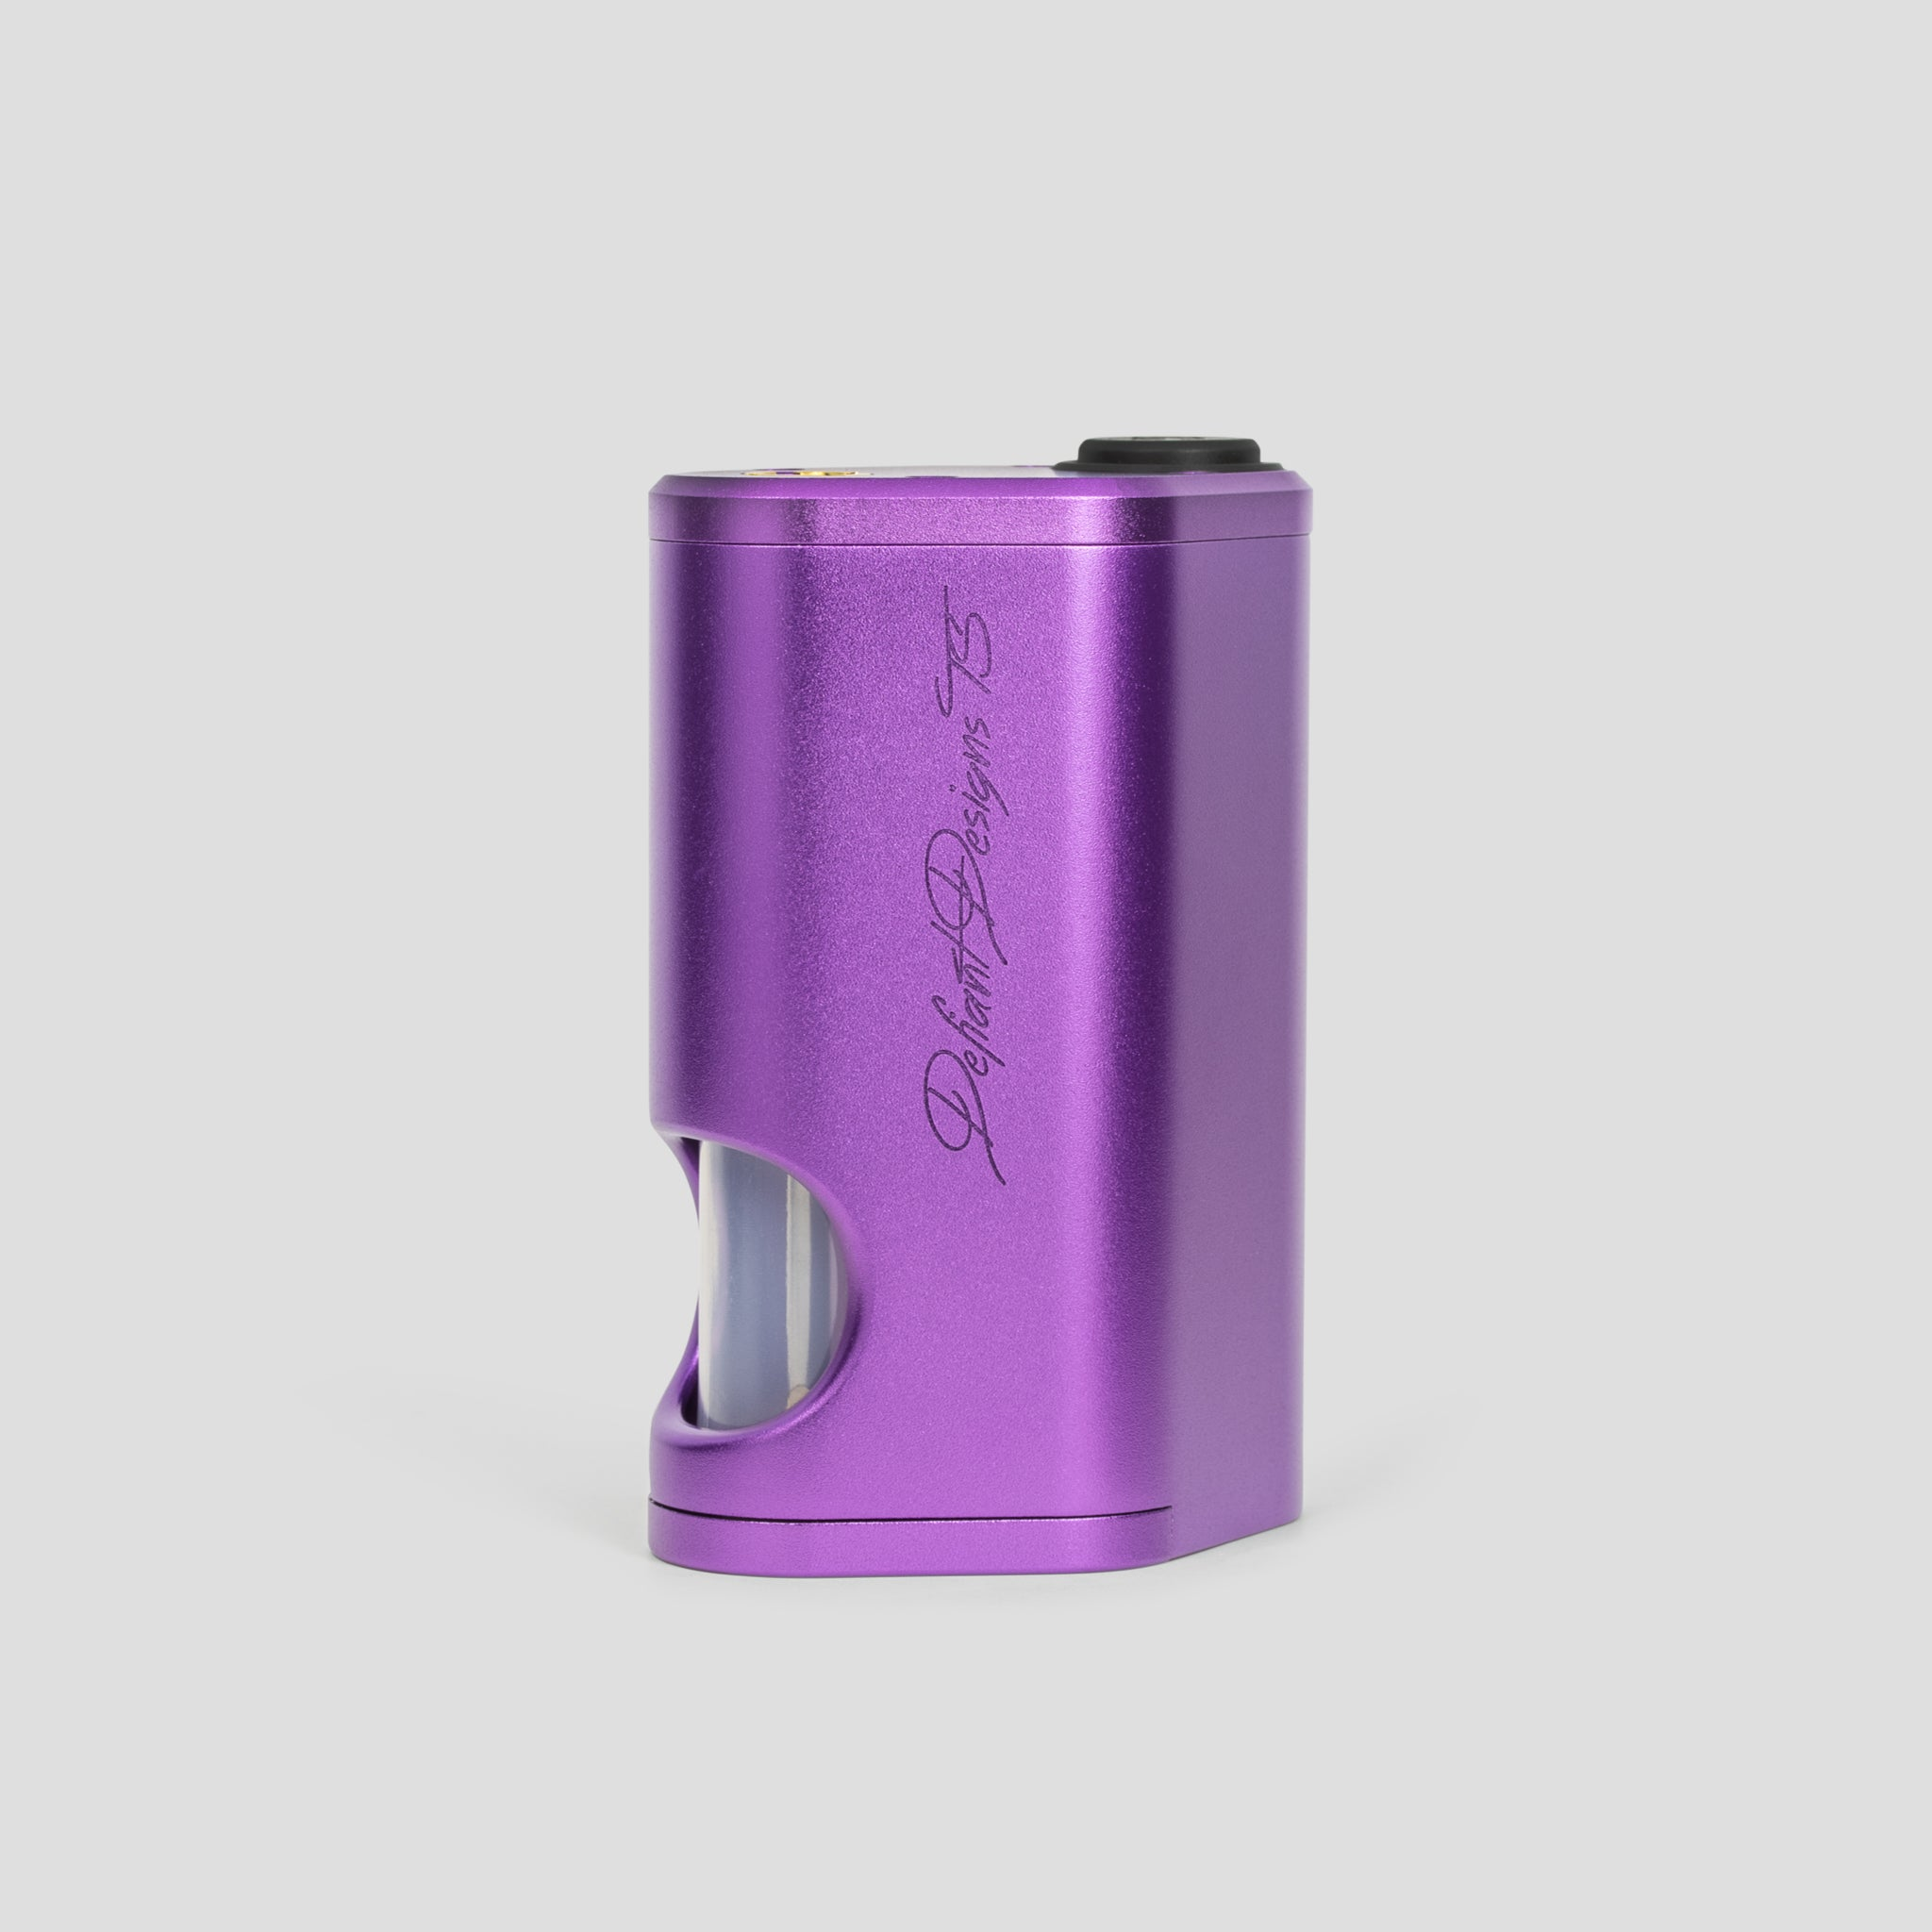 Defiant Designs TS Mechanical Squonk Mod